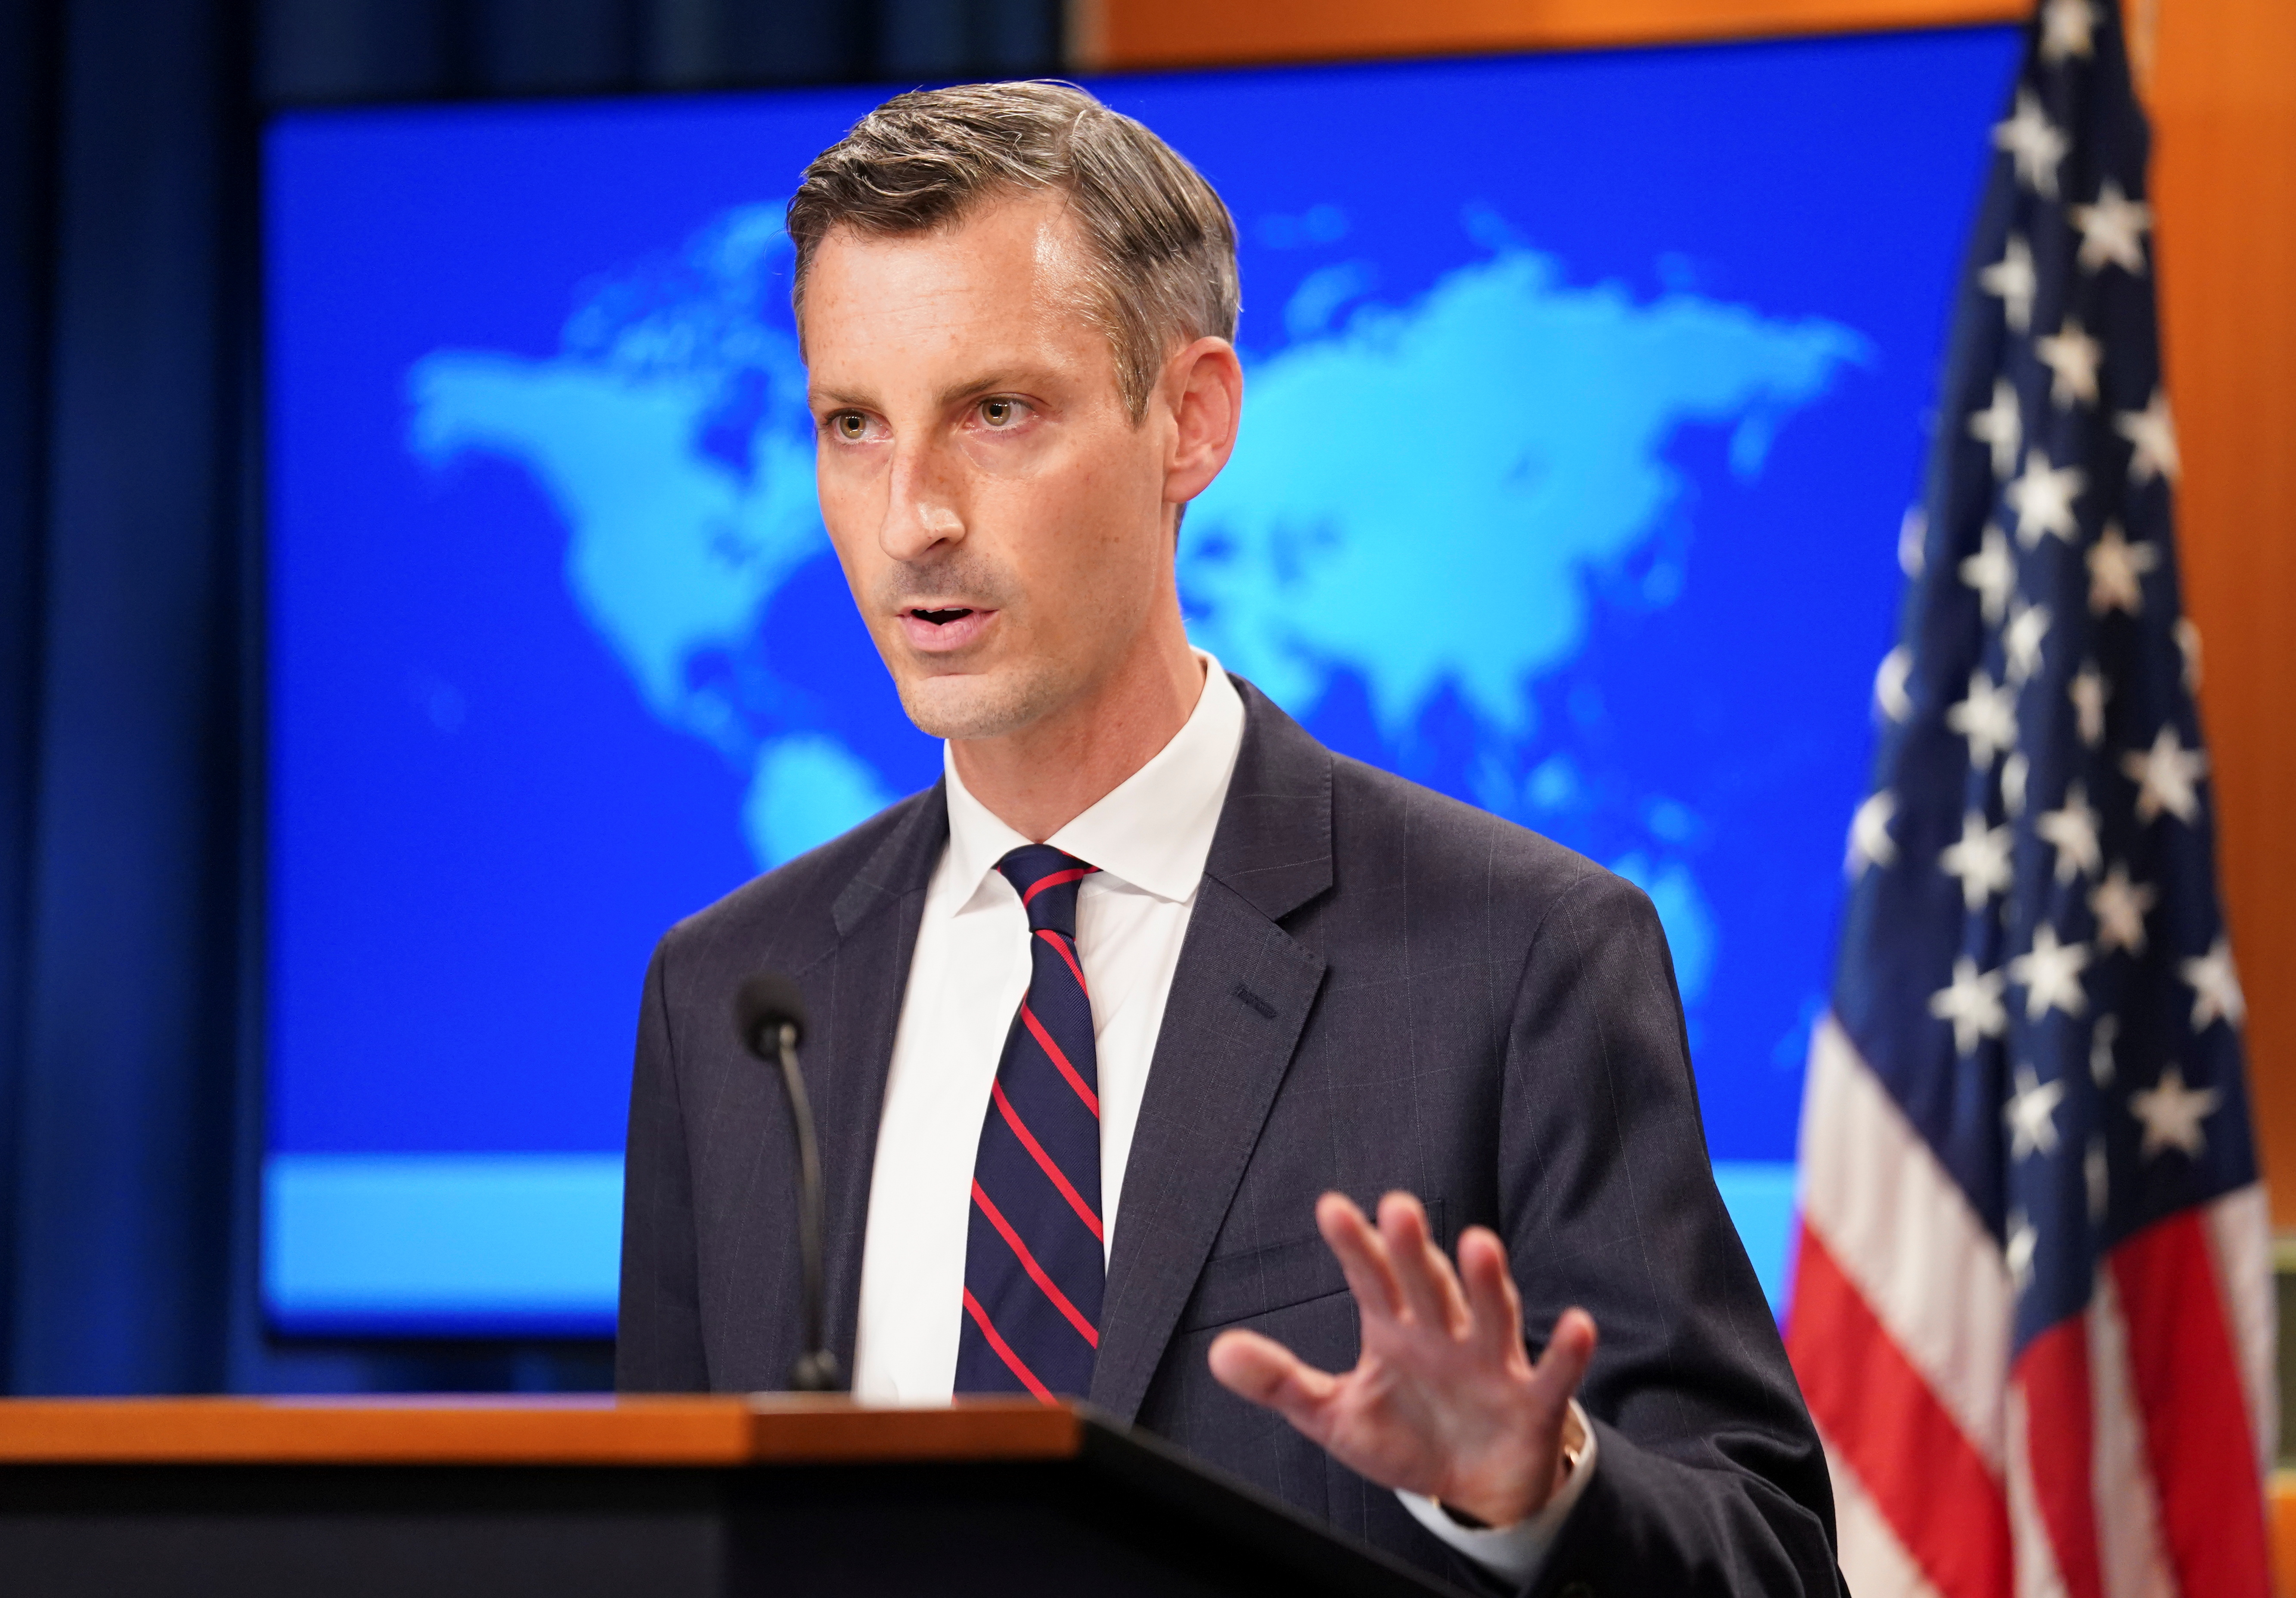 U.S. condemns Taliban's reported plan to reinstate executions, amputations